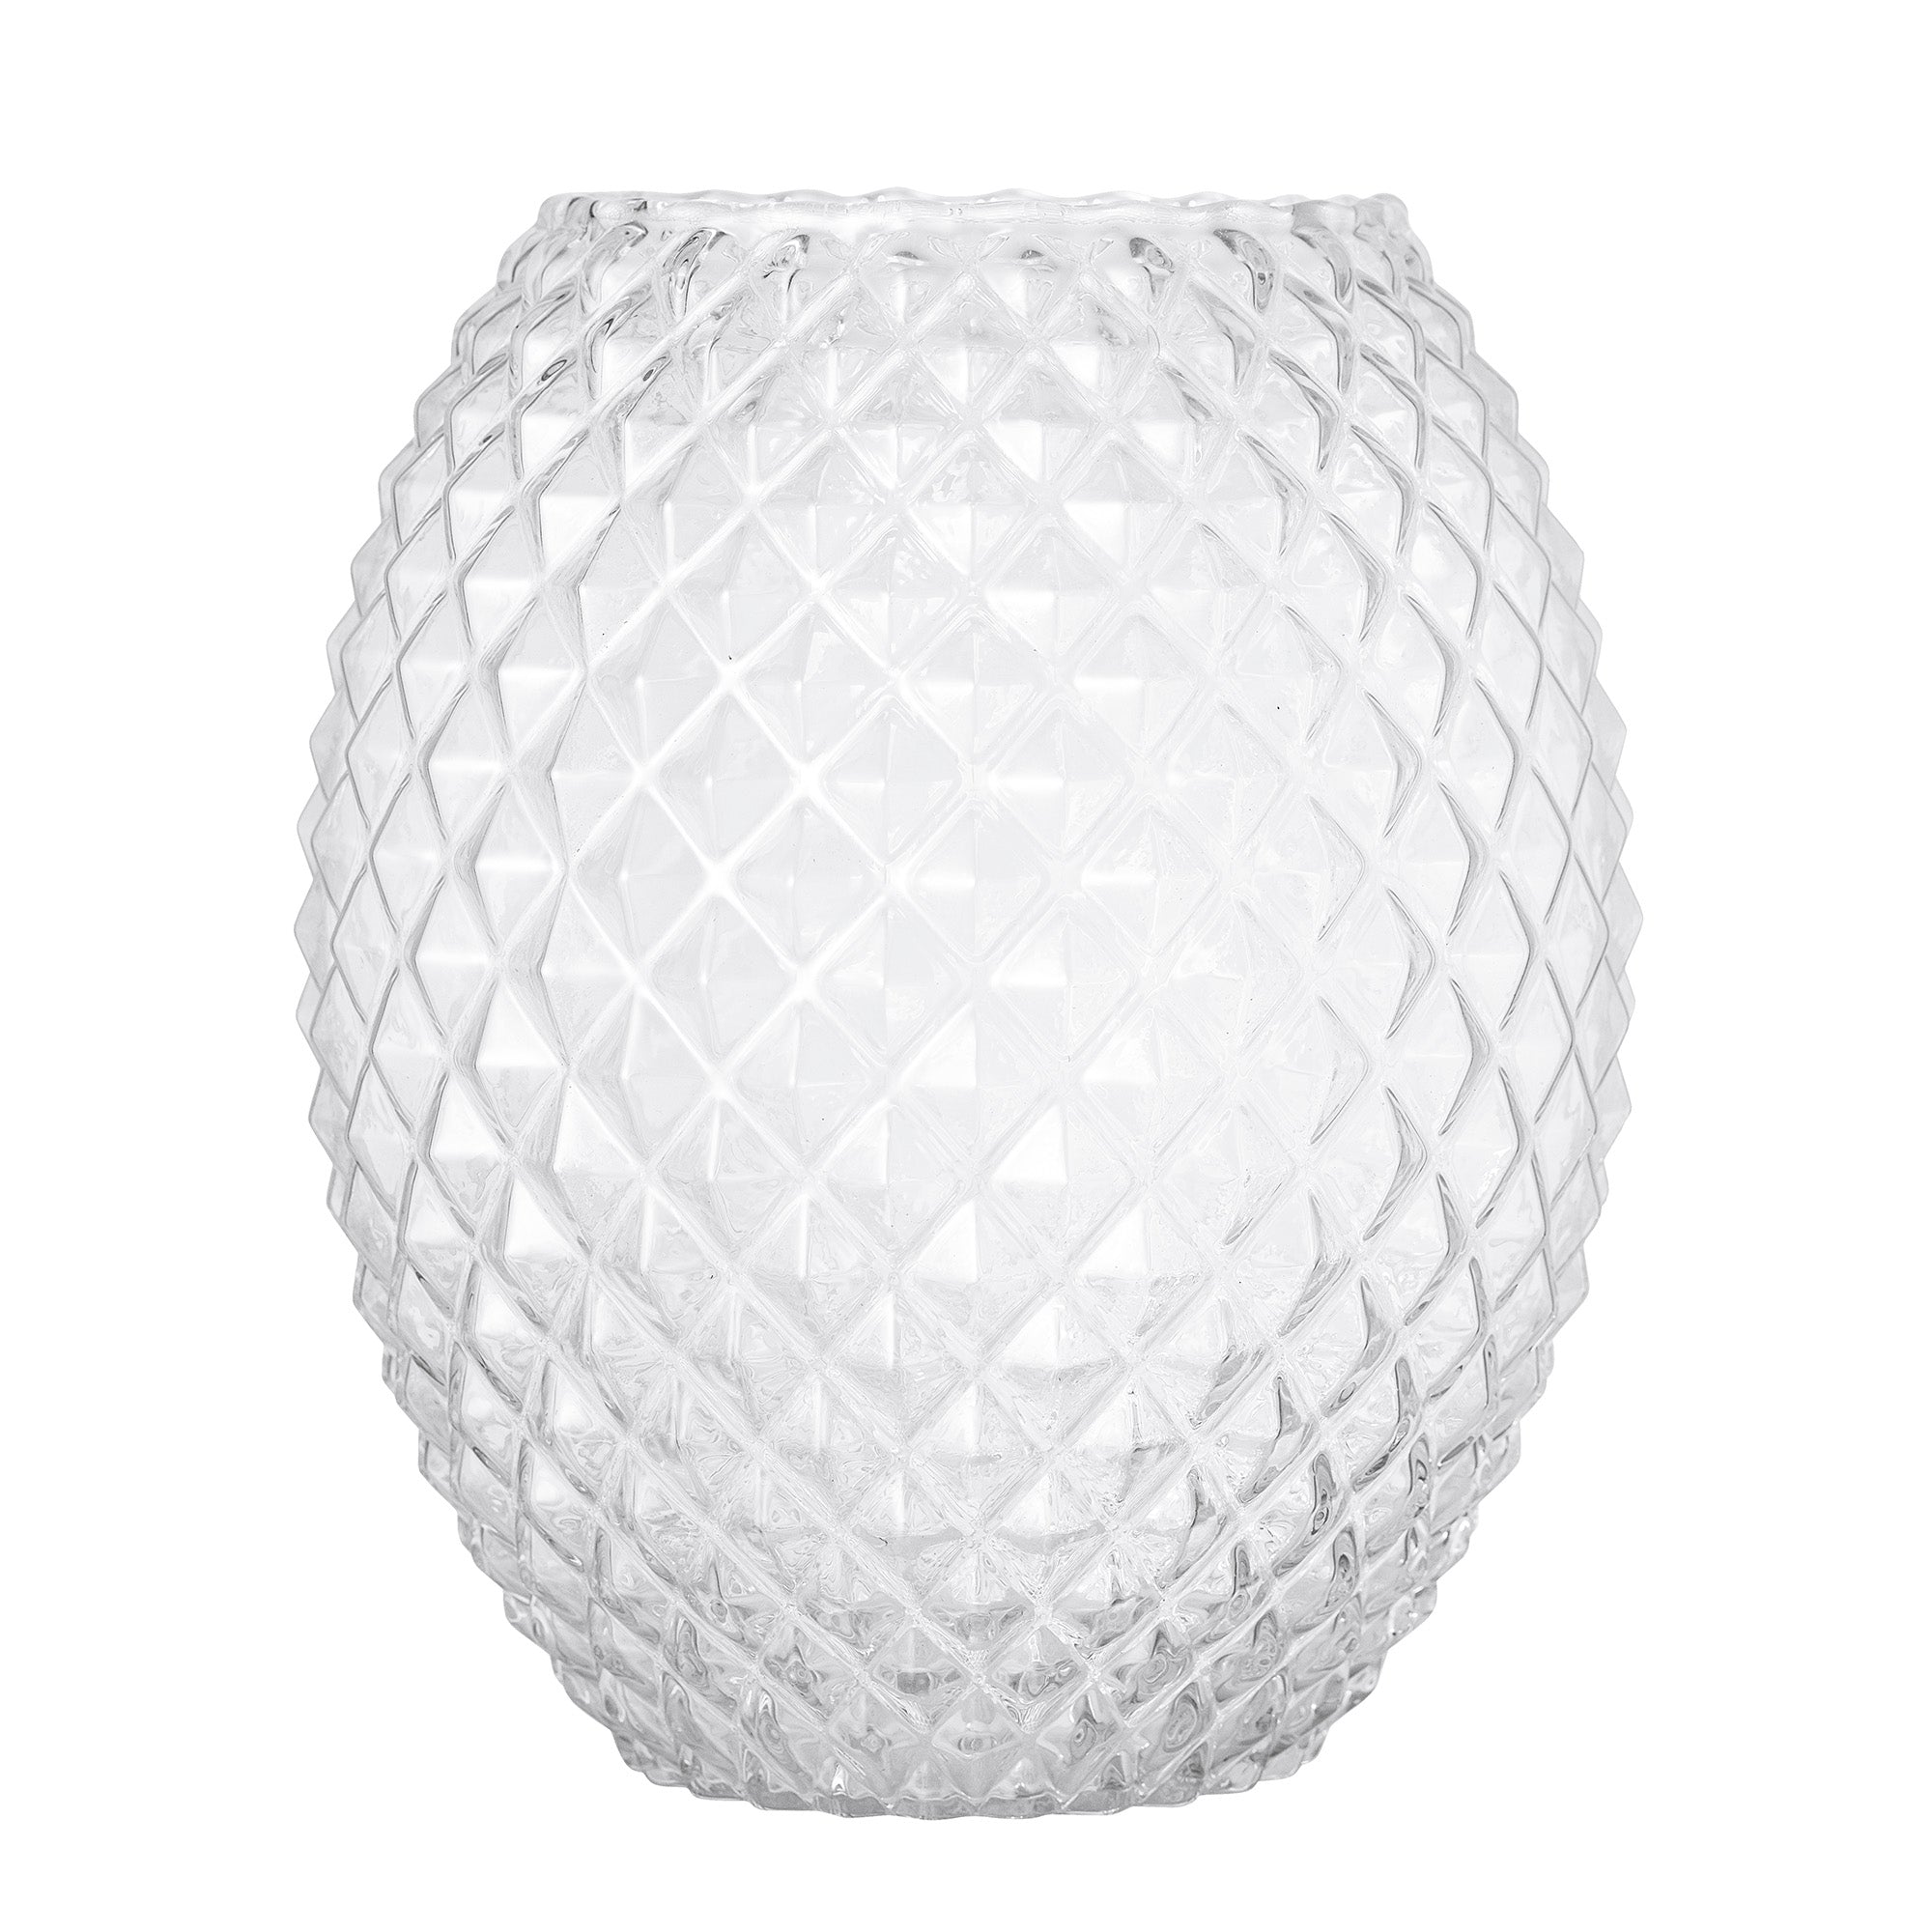 Oversized clear glass vase with diamond design textured pattern